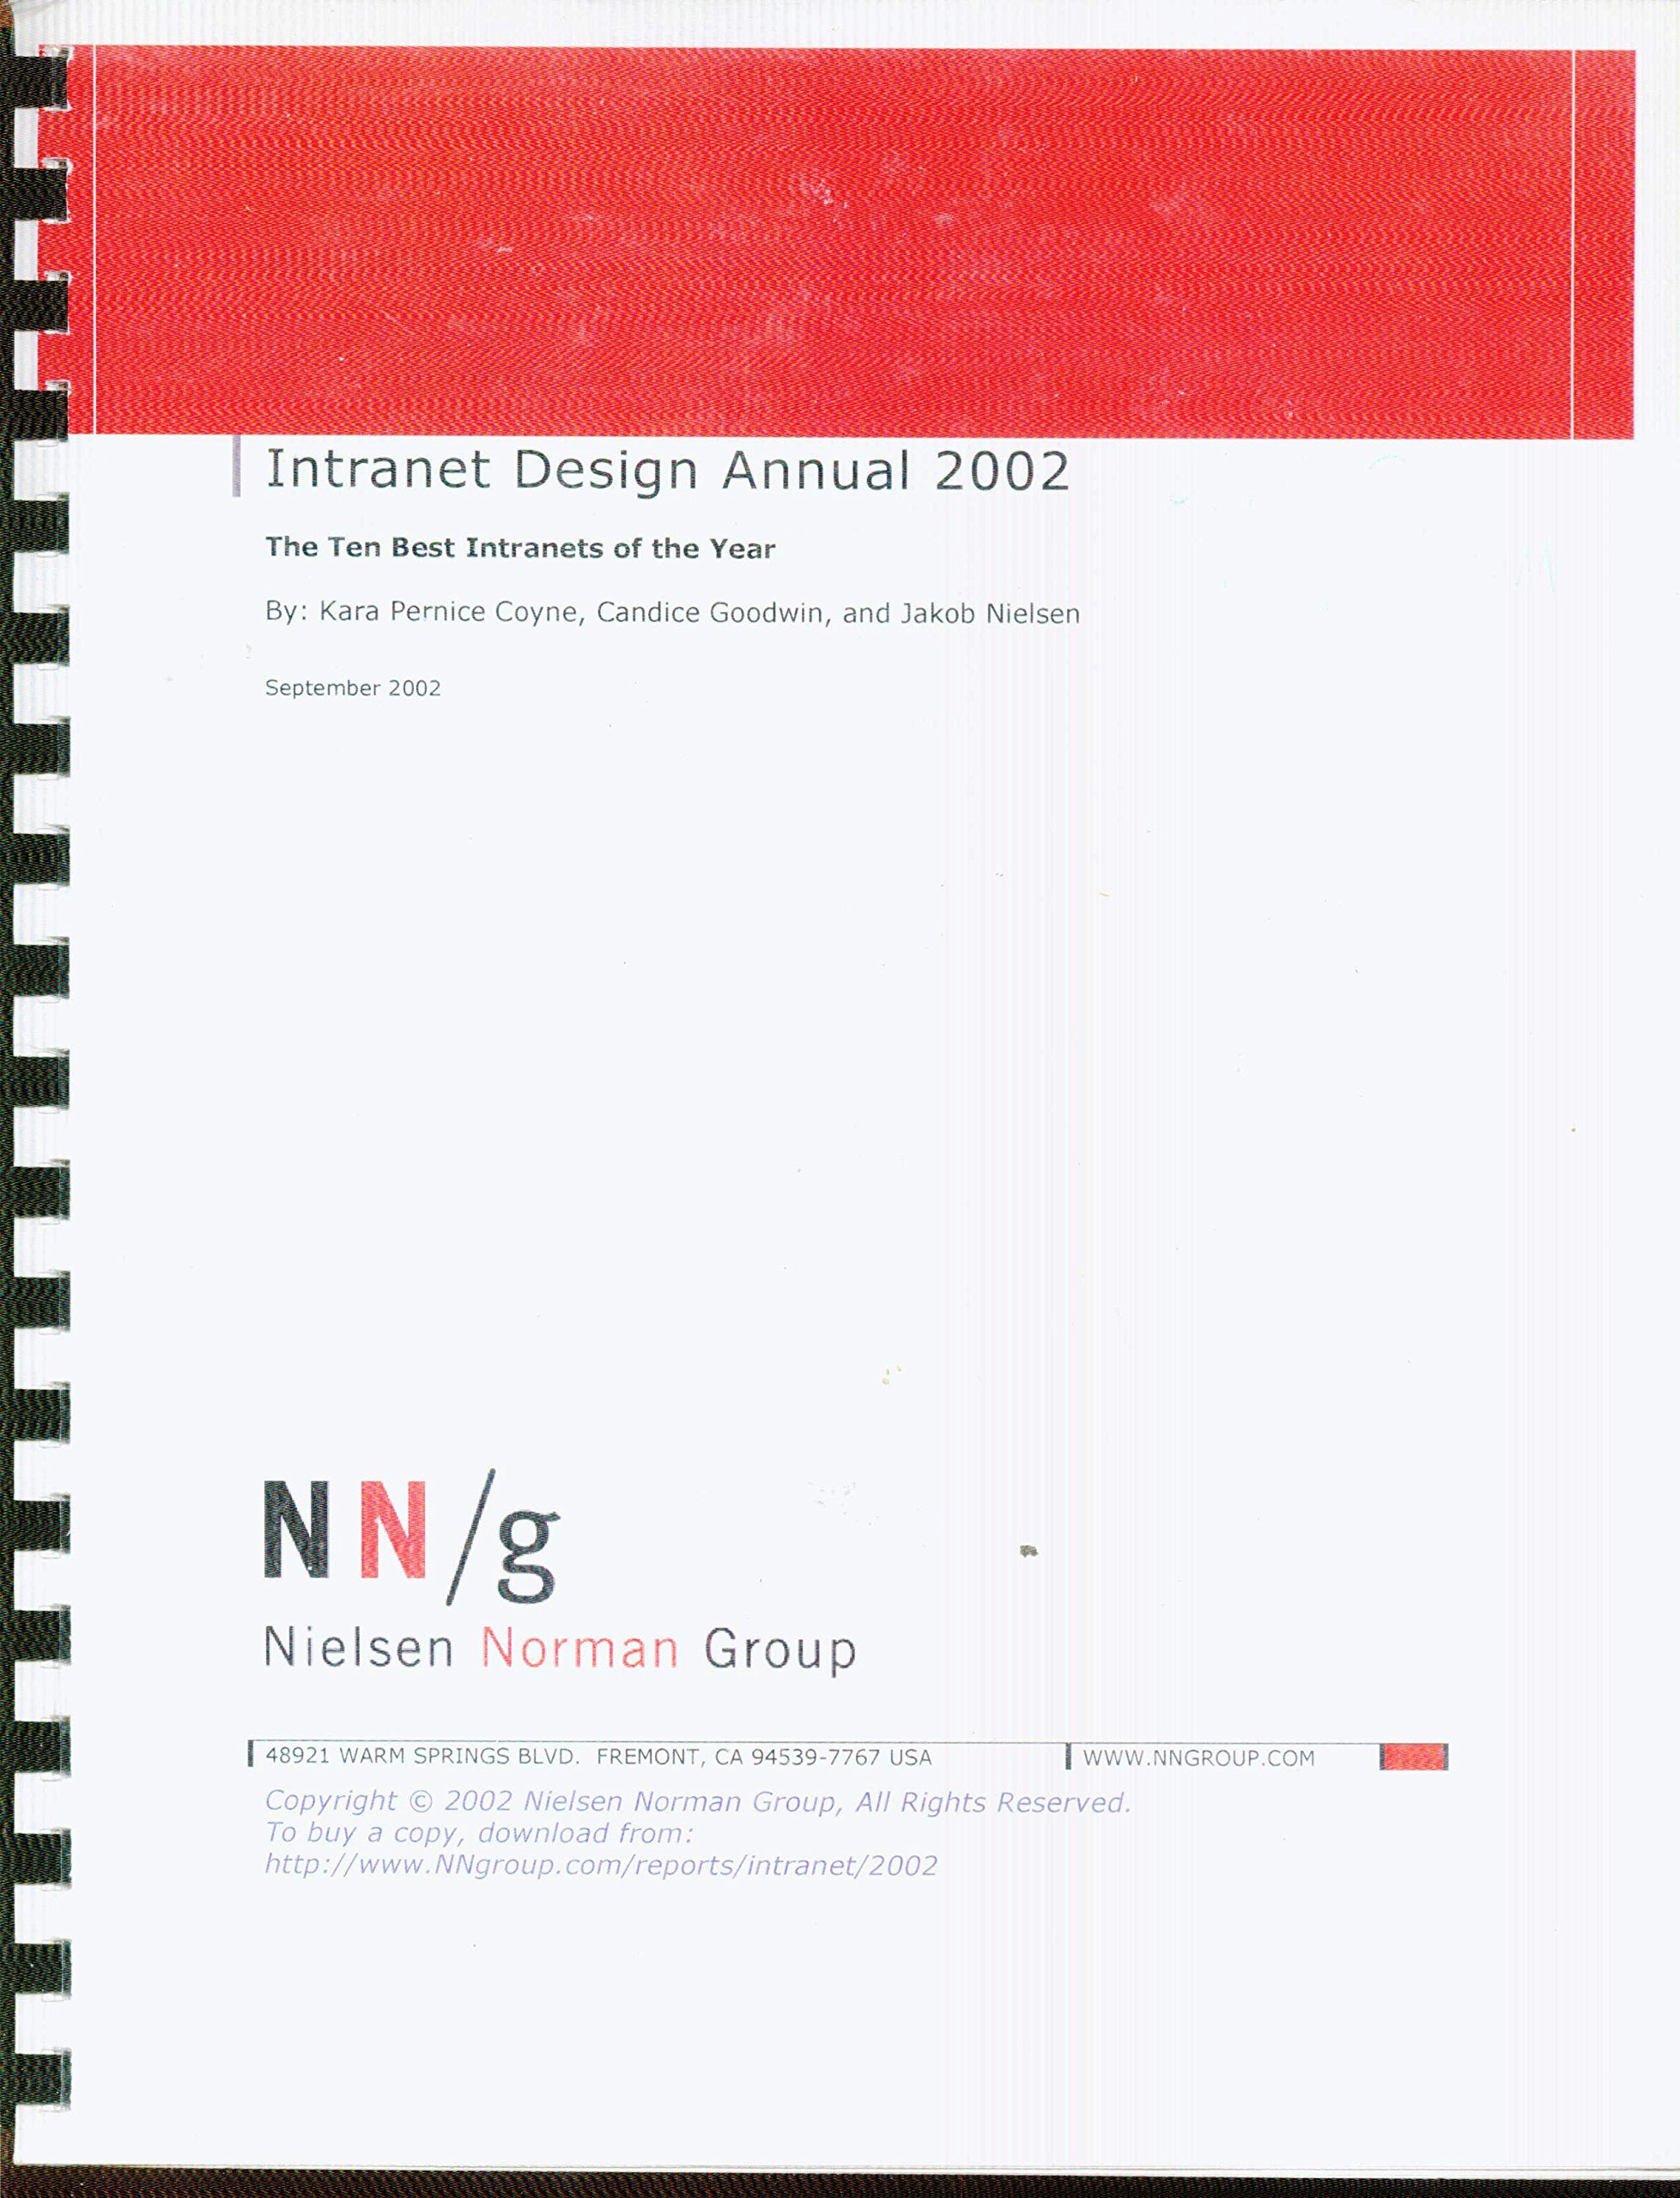 Intranet design annual: The ten best intranets of 2001